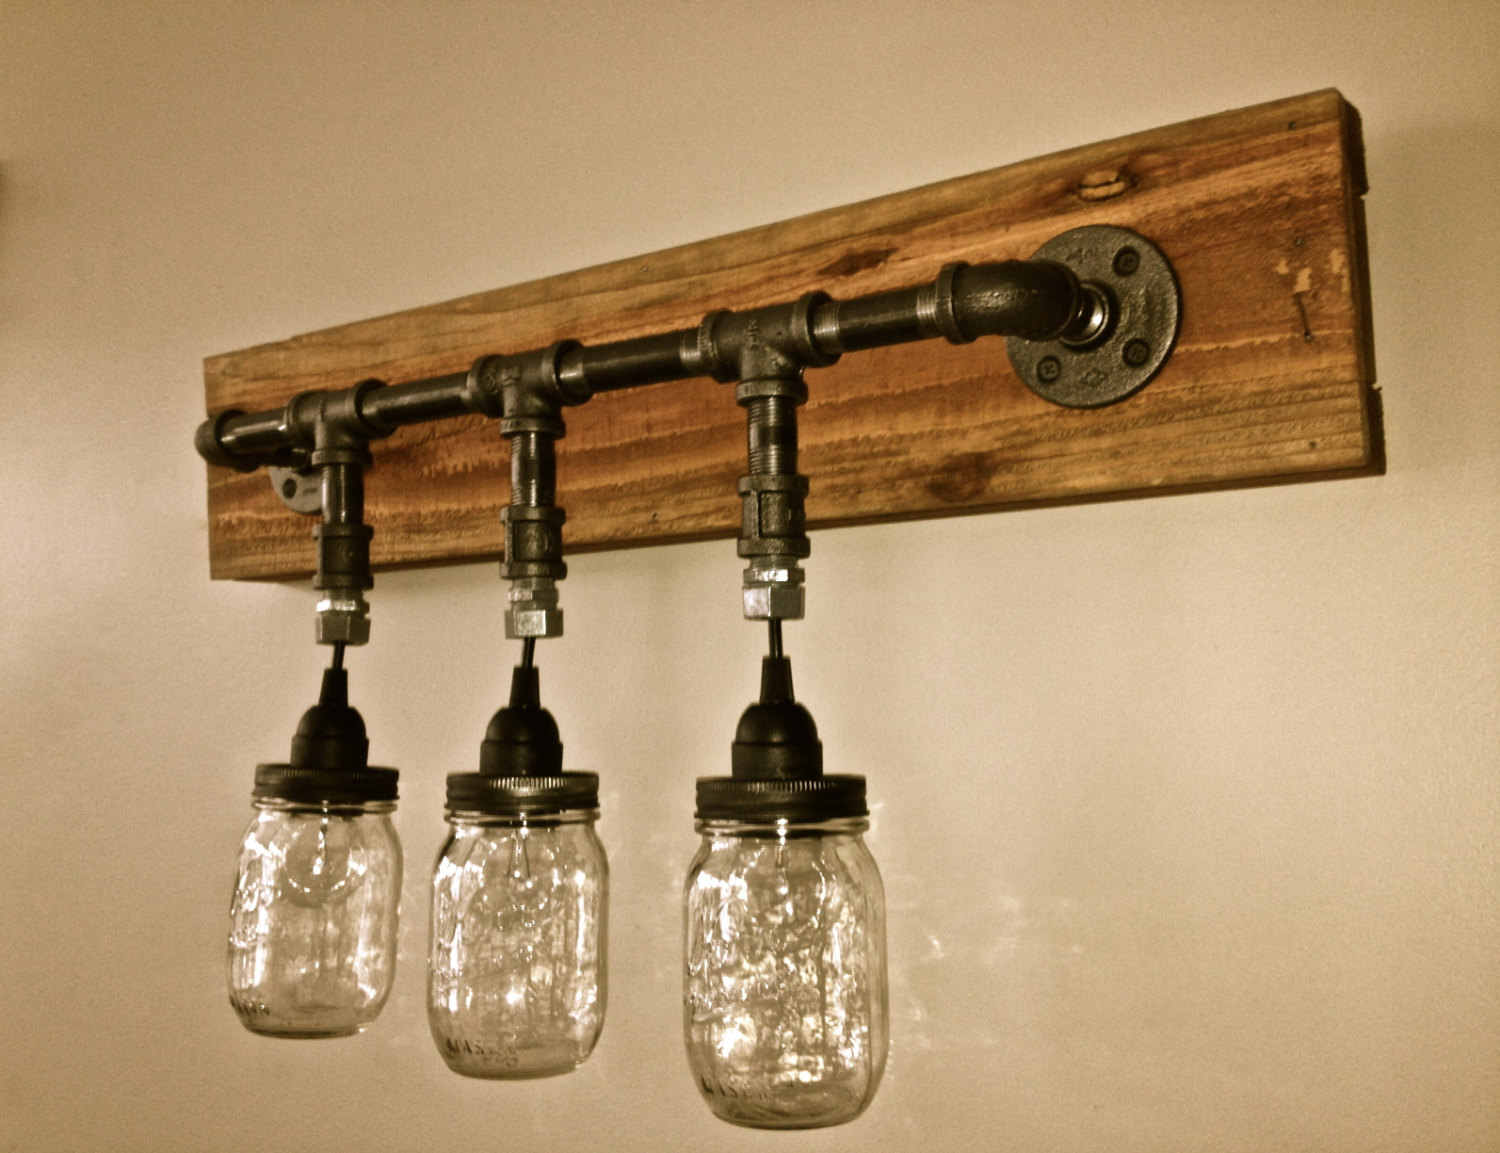 Iron Pipe Light Fixture Extraordinarily Unique Wooden Light Fixtures That You Must